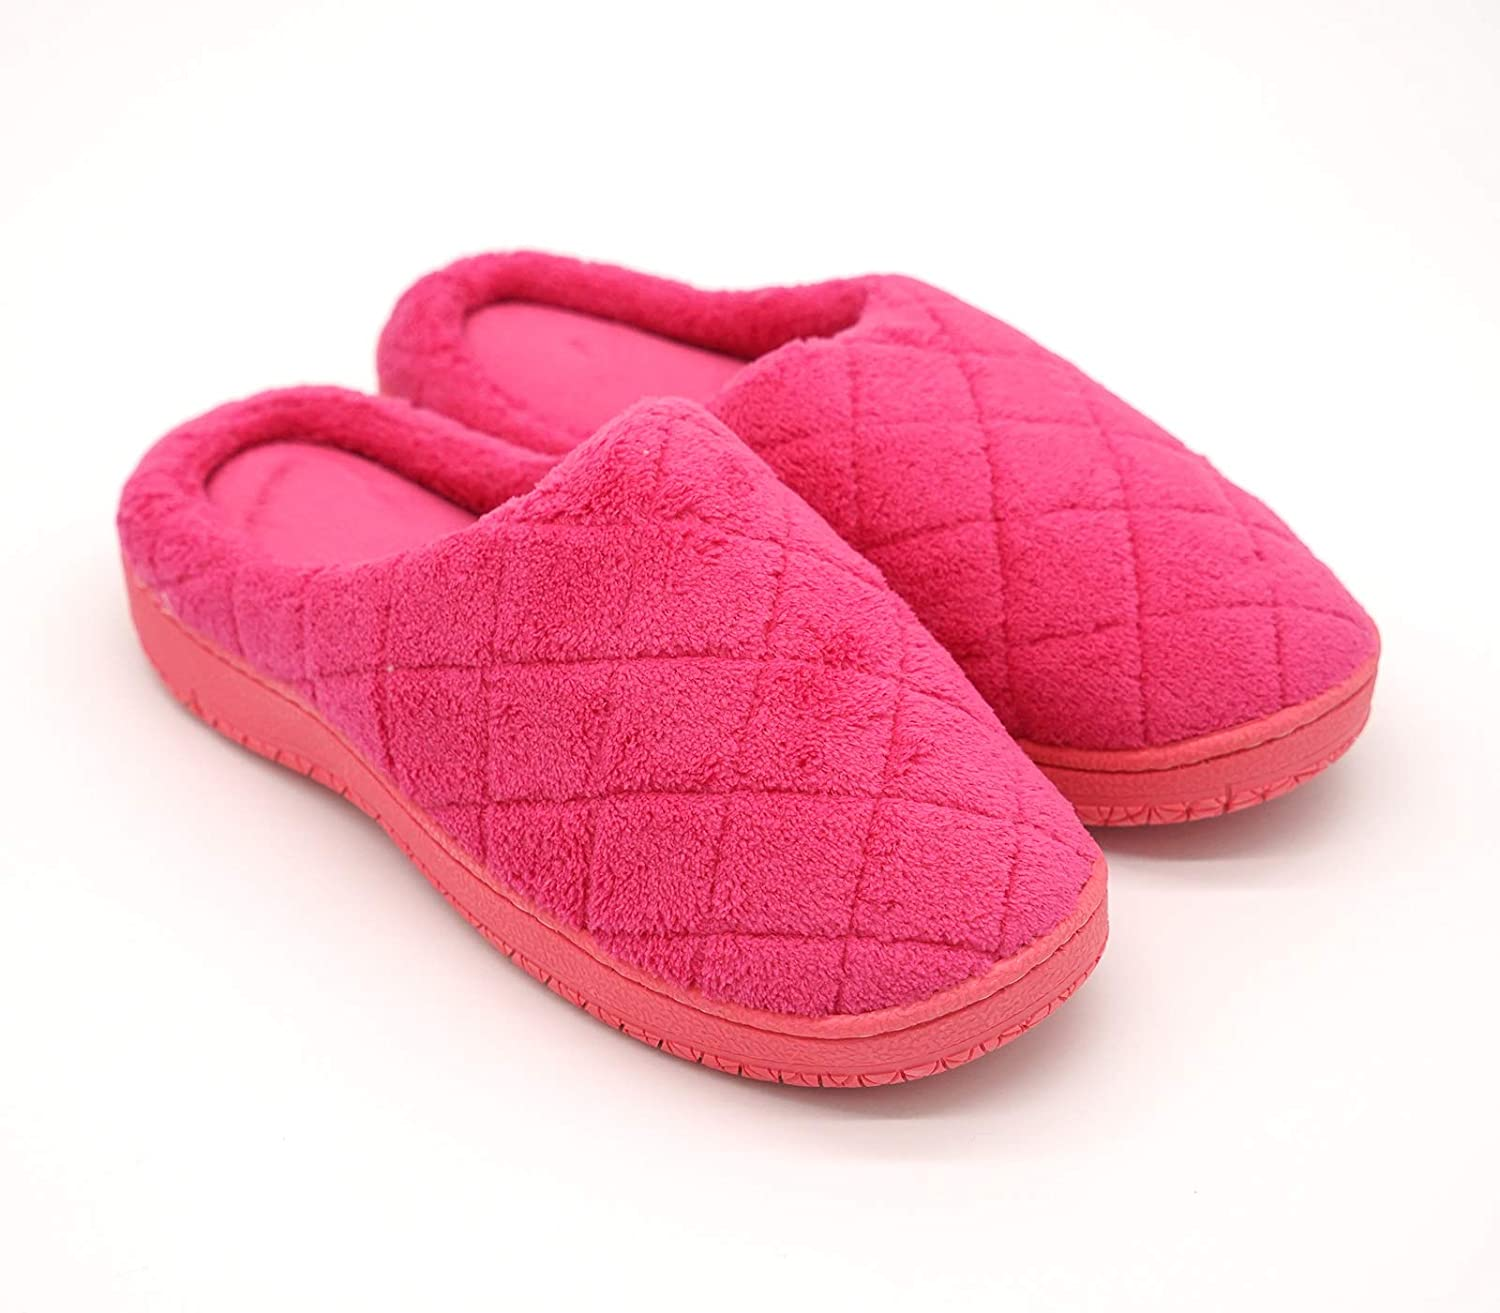 Baviue Women's Fashion Indoor House Memory Foam Ladies Slippers